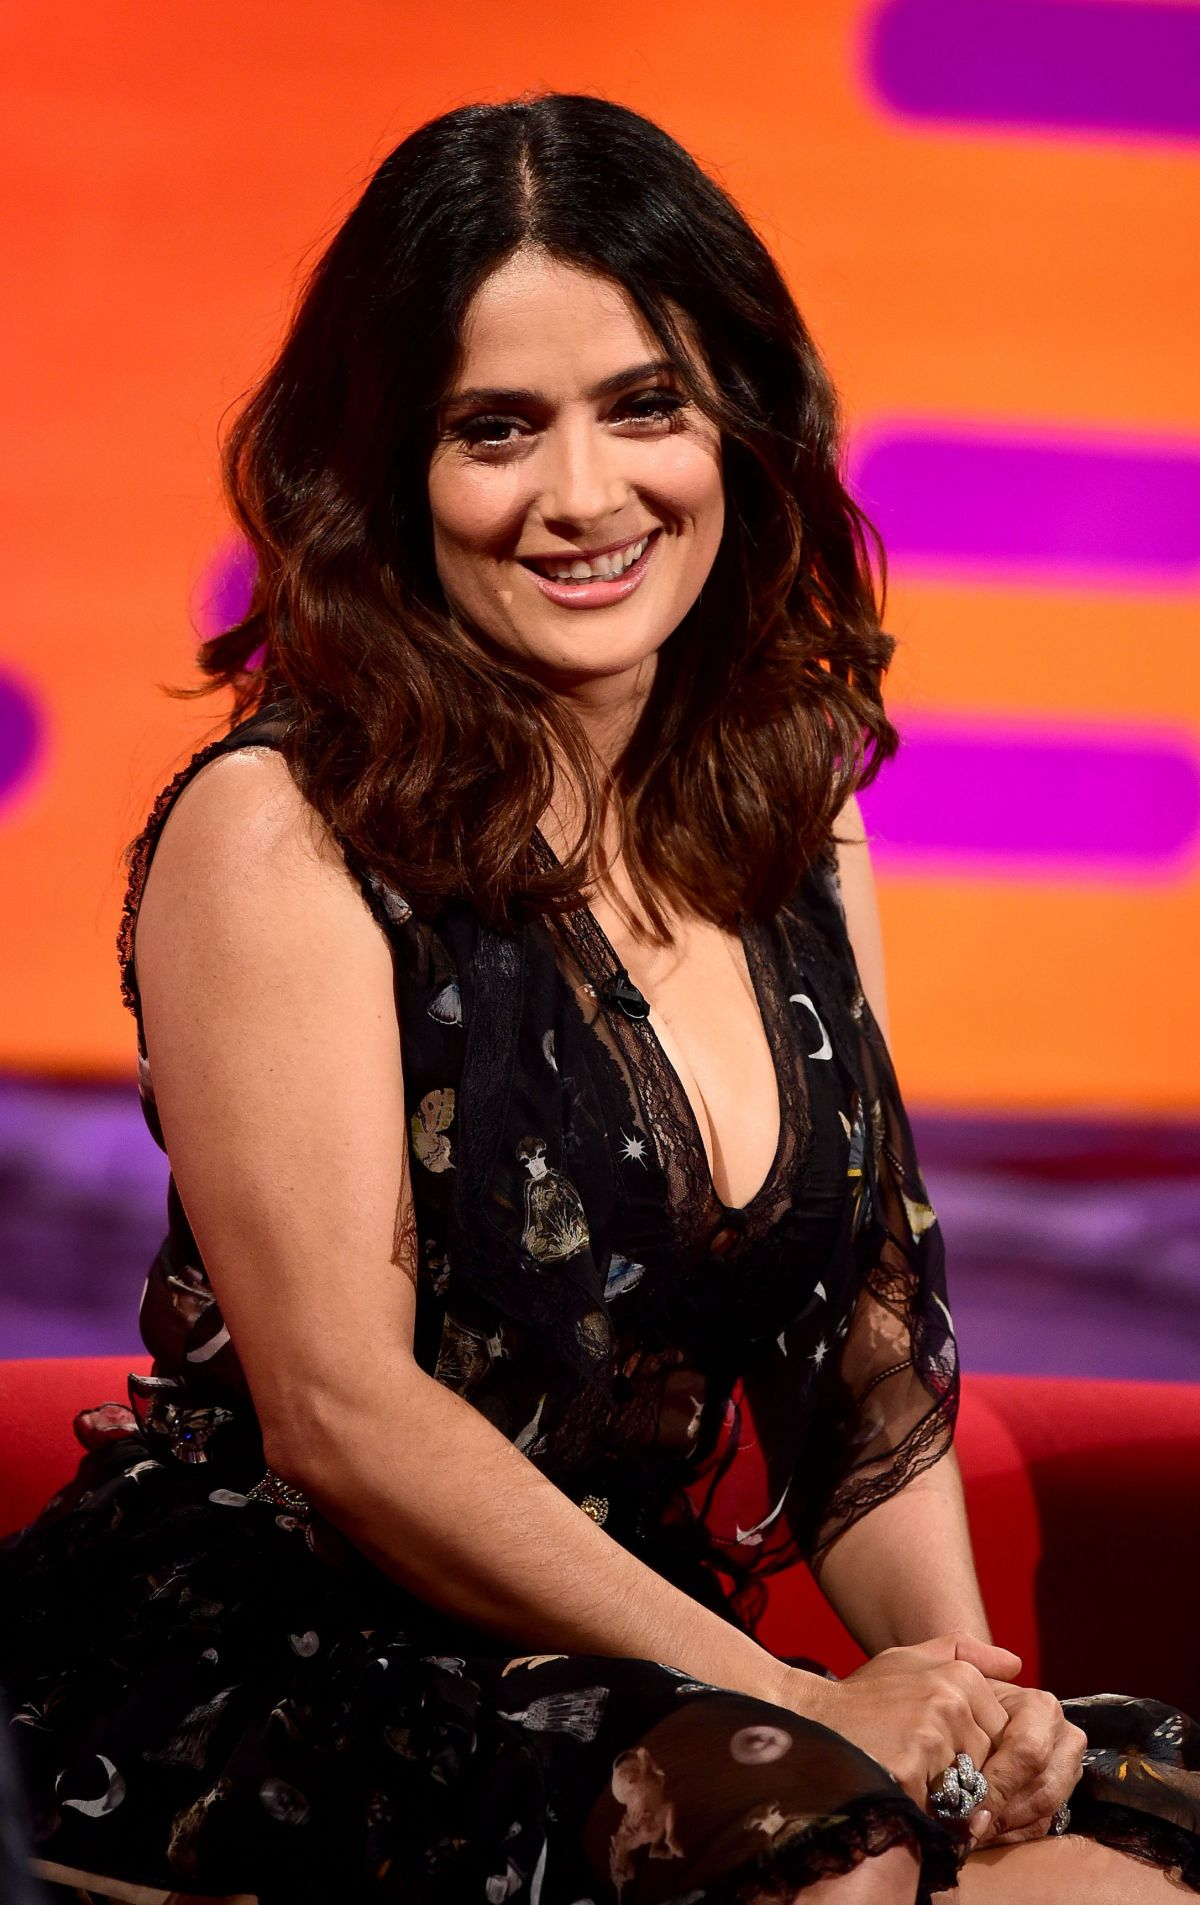 SALMA HAYEK at The Graham Norton Show in London 06/02/2016 ...